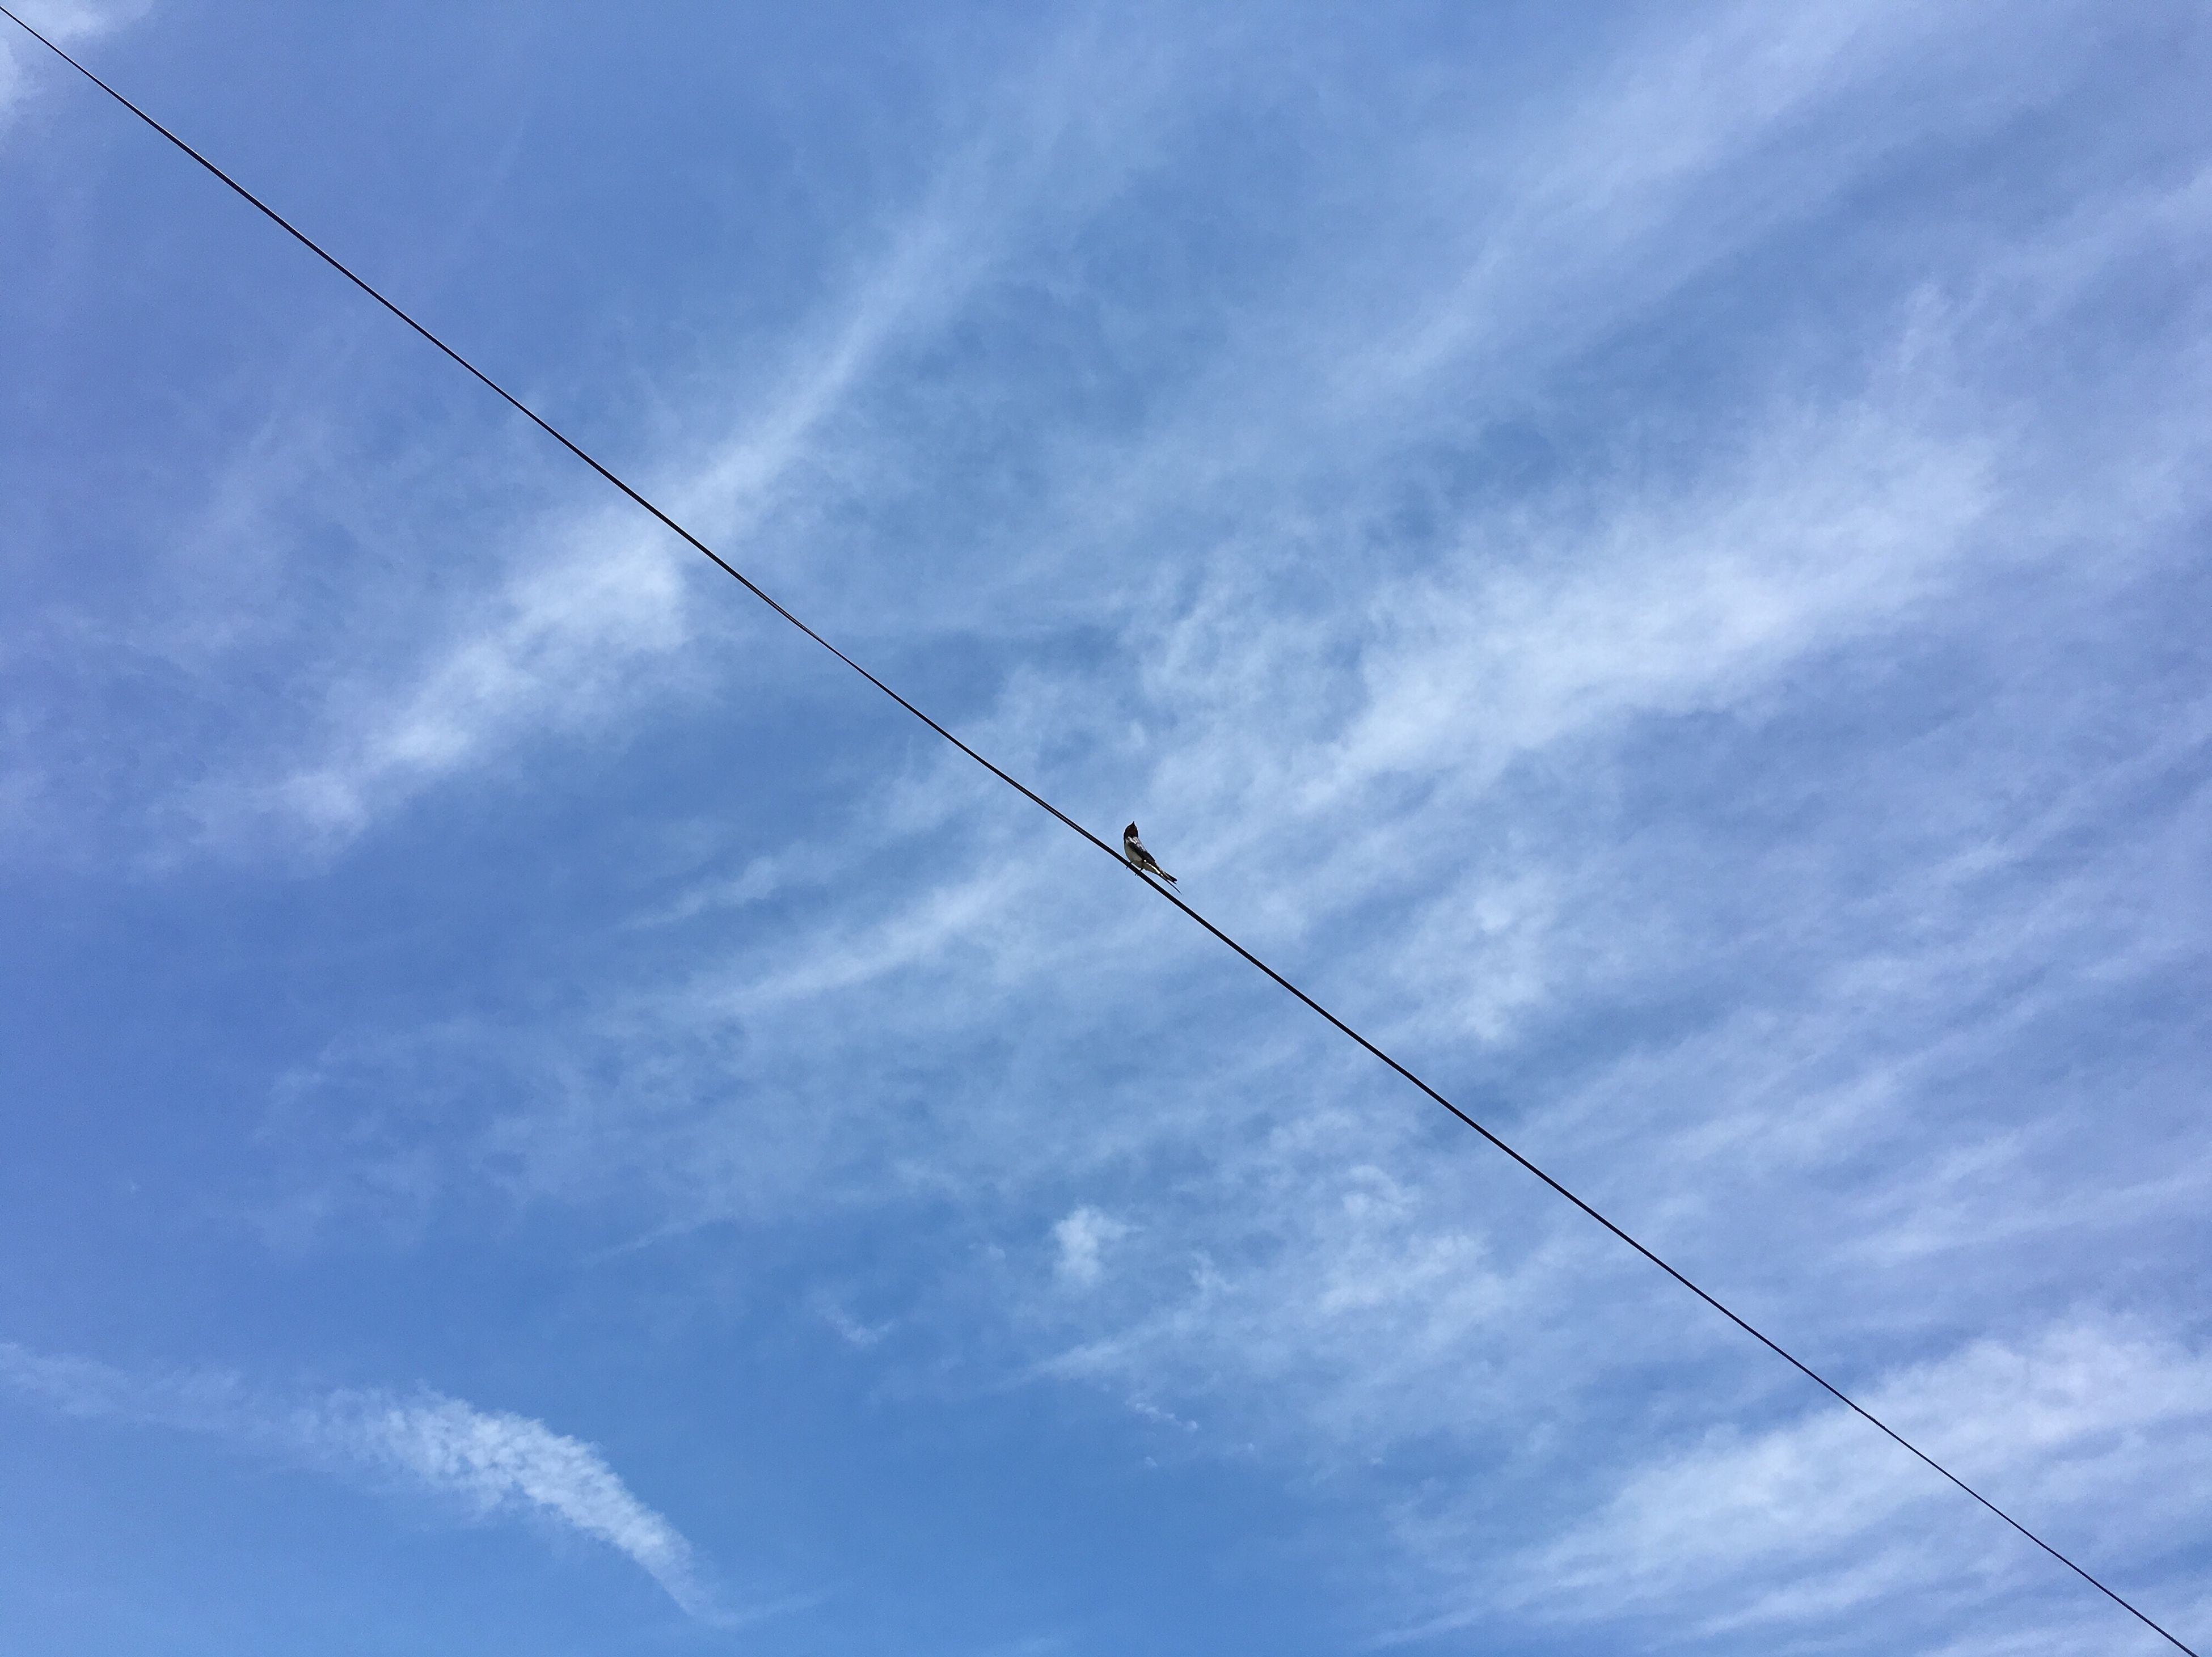 low angle view, sky, blue, cloud - sky, flying, airplane, cloud, day, technology, cloudy, no people, outdoors, cable, fuel and power generation, connection, transportation, nature, power line, electricity, air vehicle